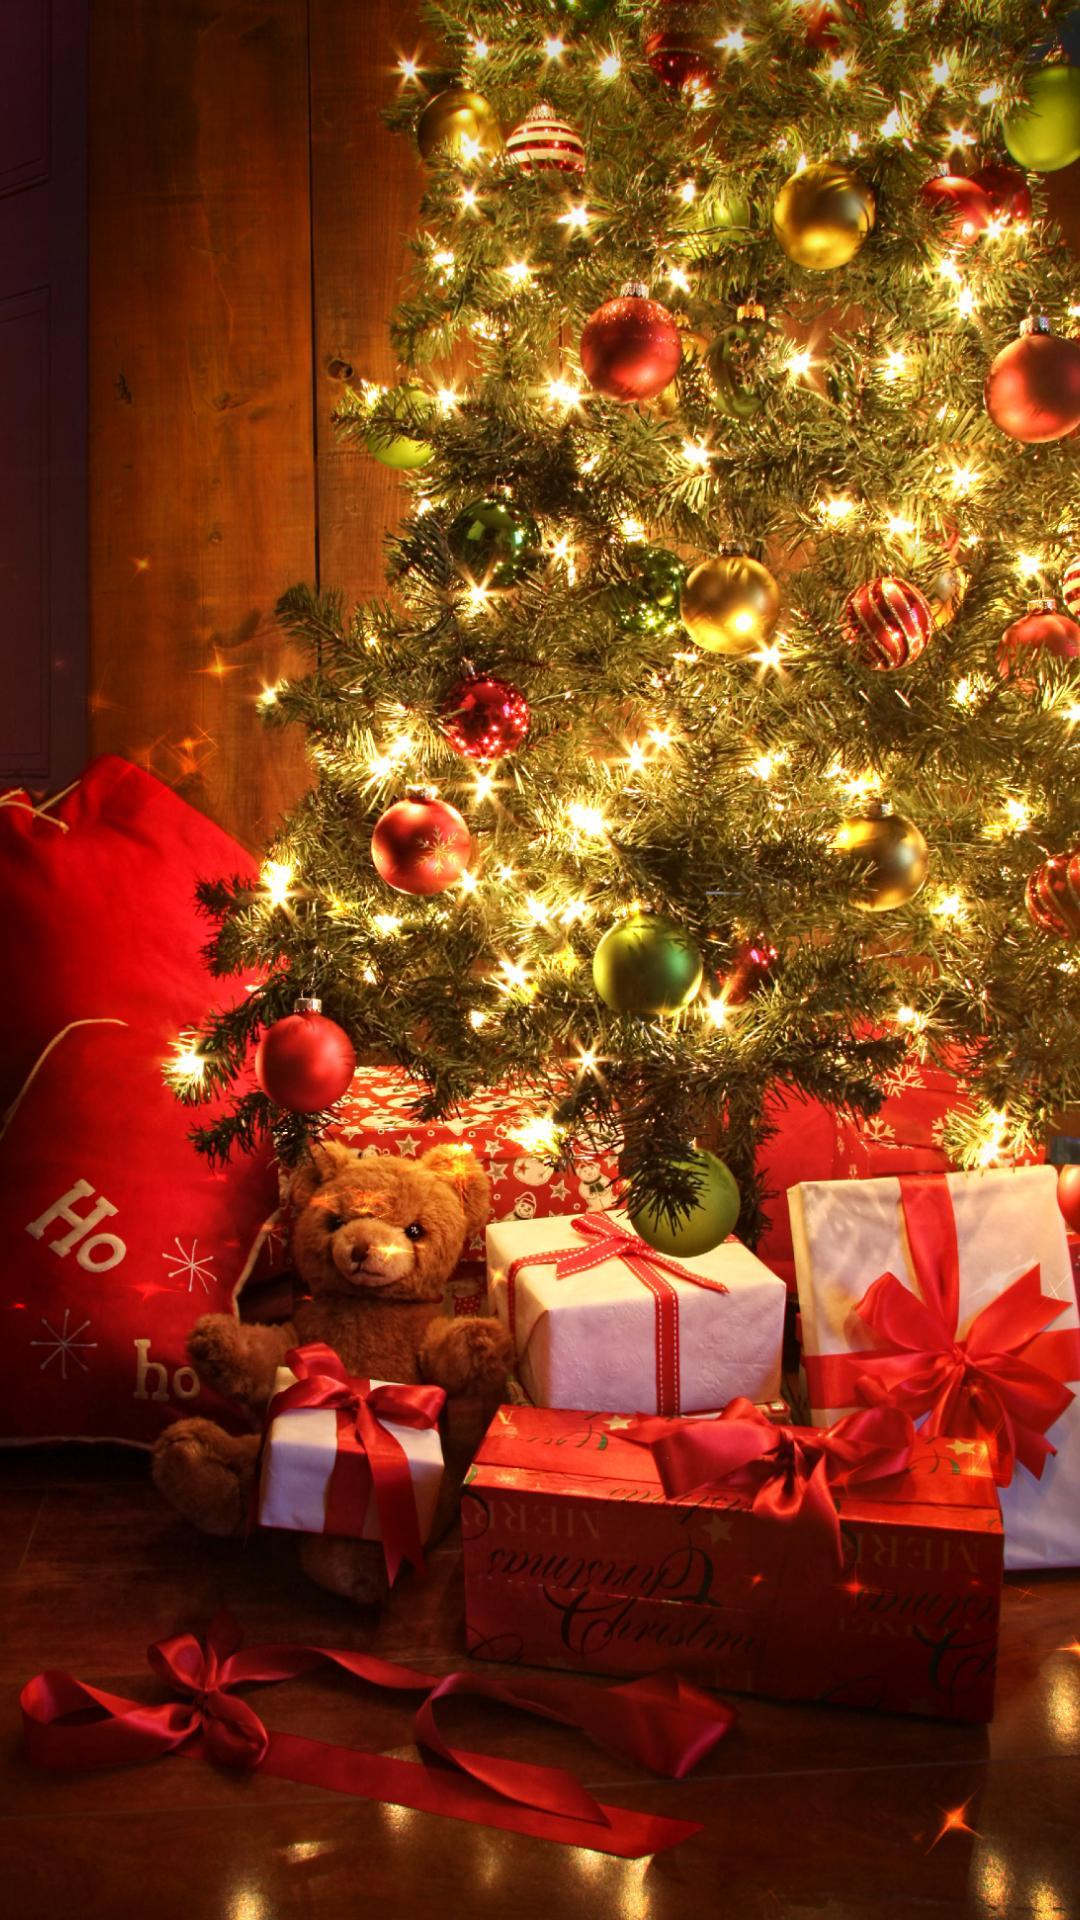 Christmas Lights Wallpaper For Android Apk Download